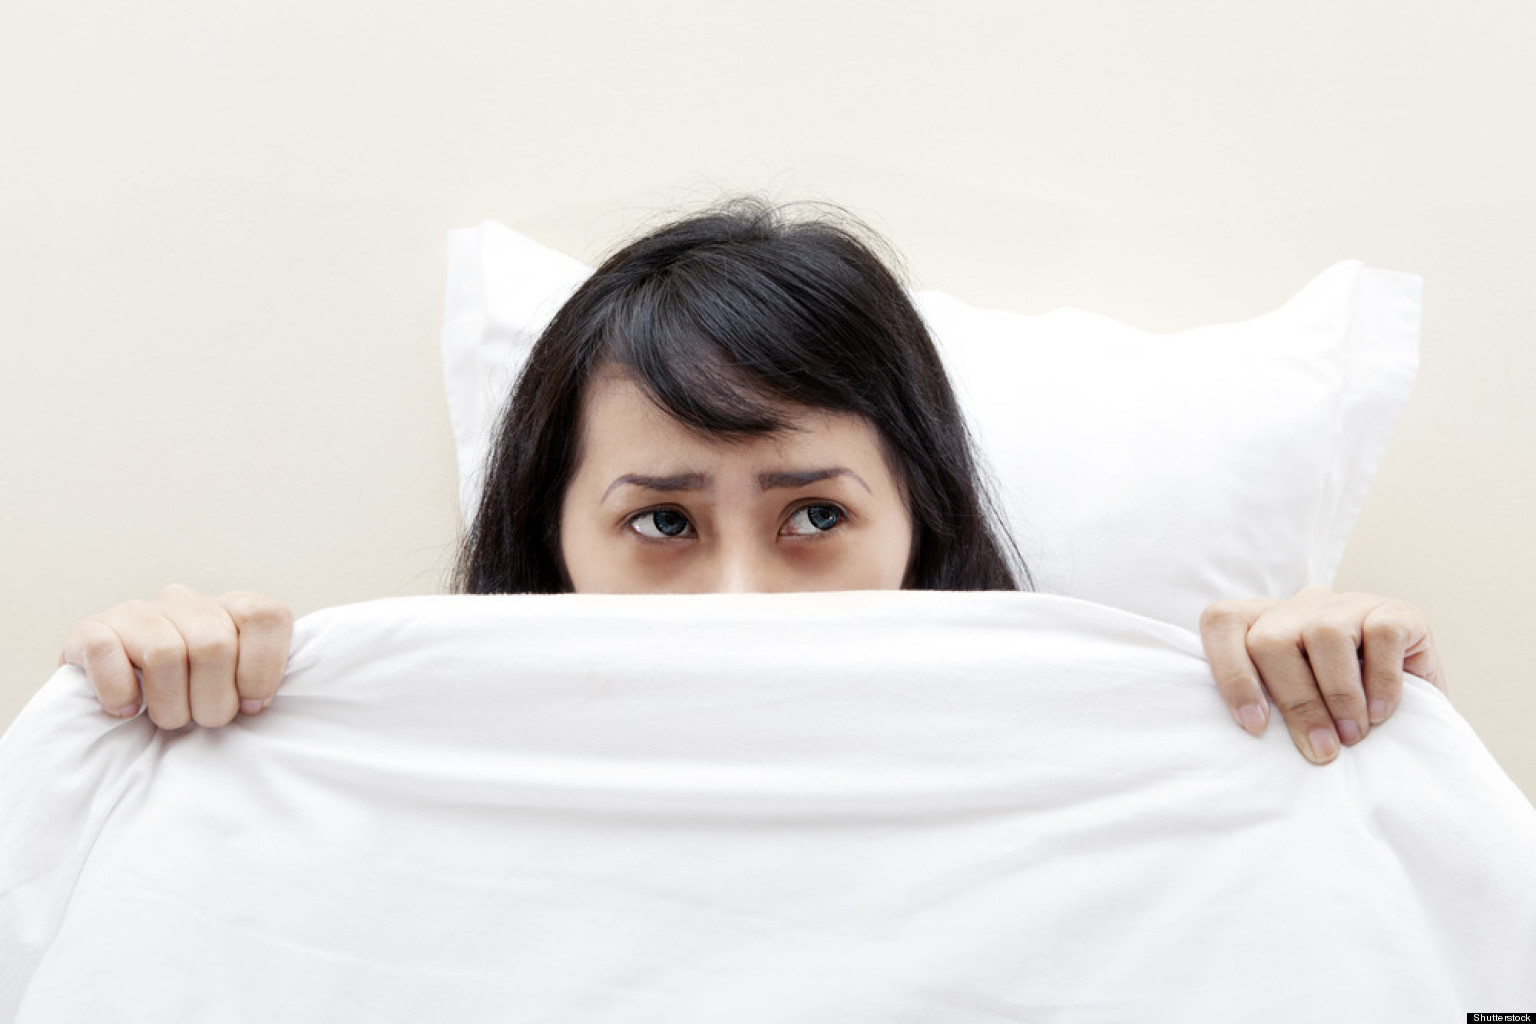 Scared person in bed